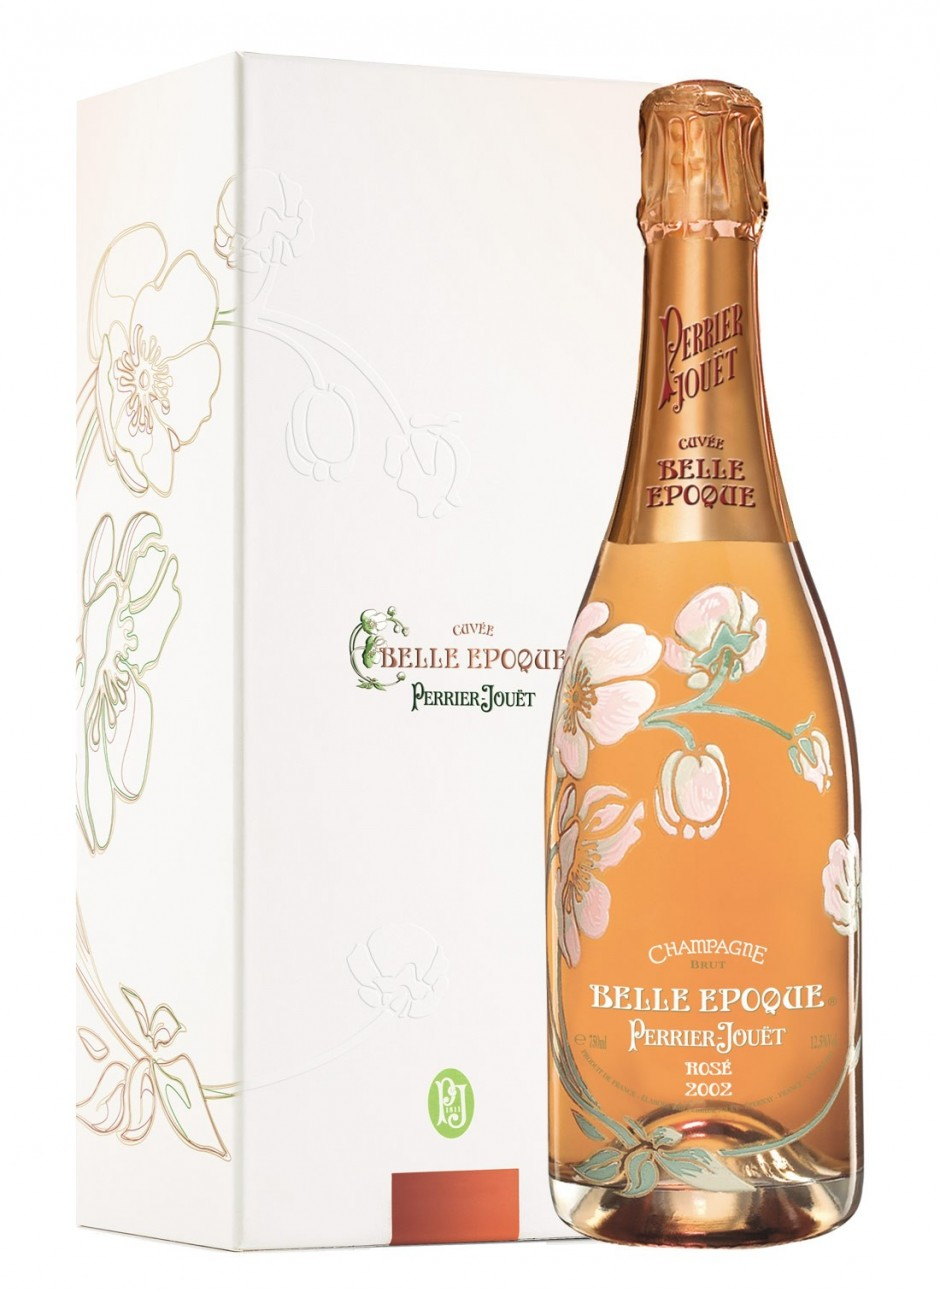 Perrier-Jouet Belle Epoque Rose Champagne AOC gift box